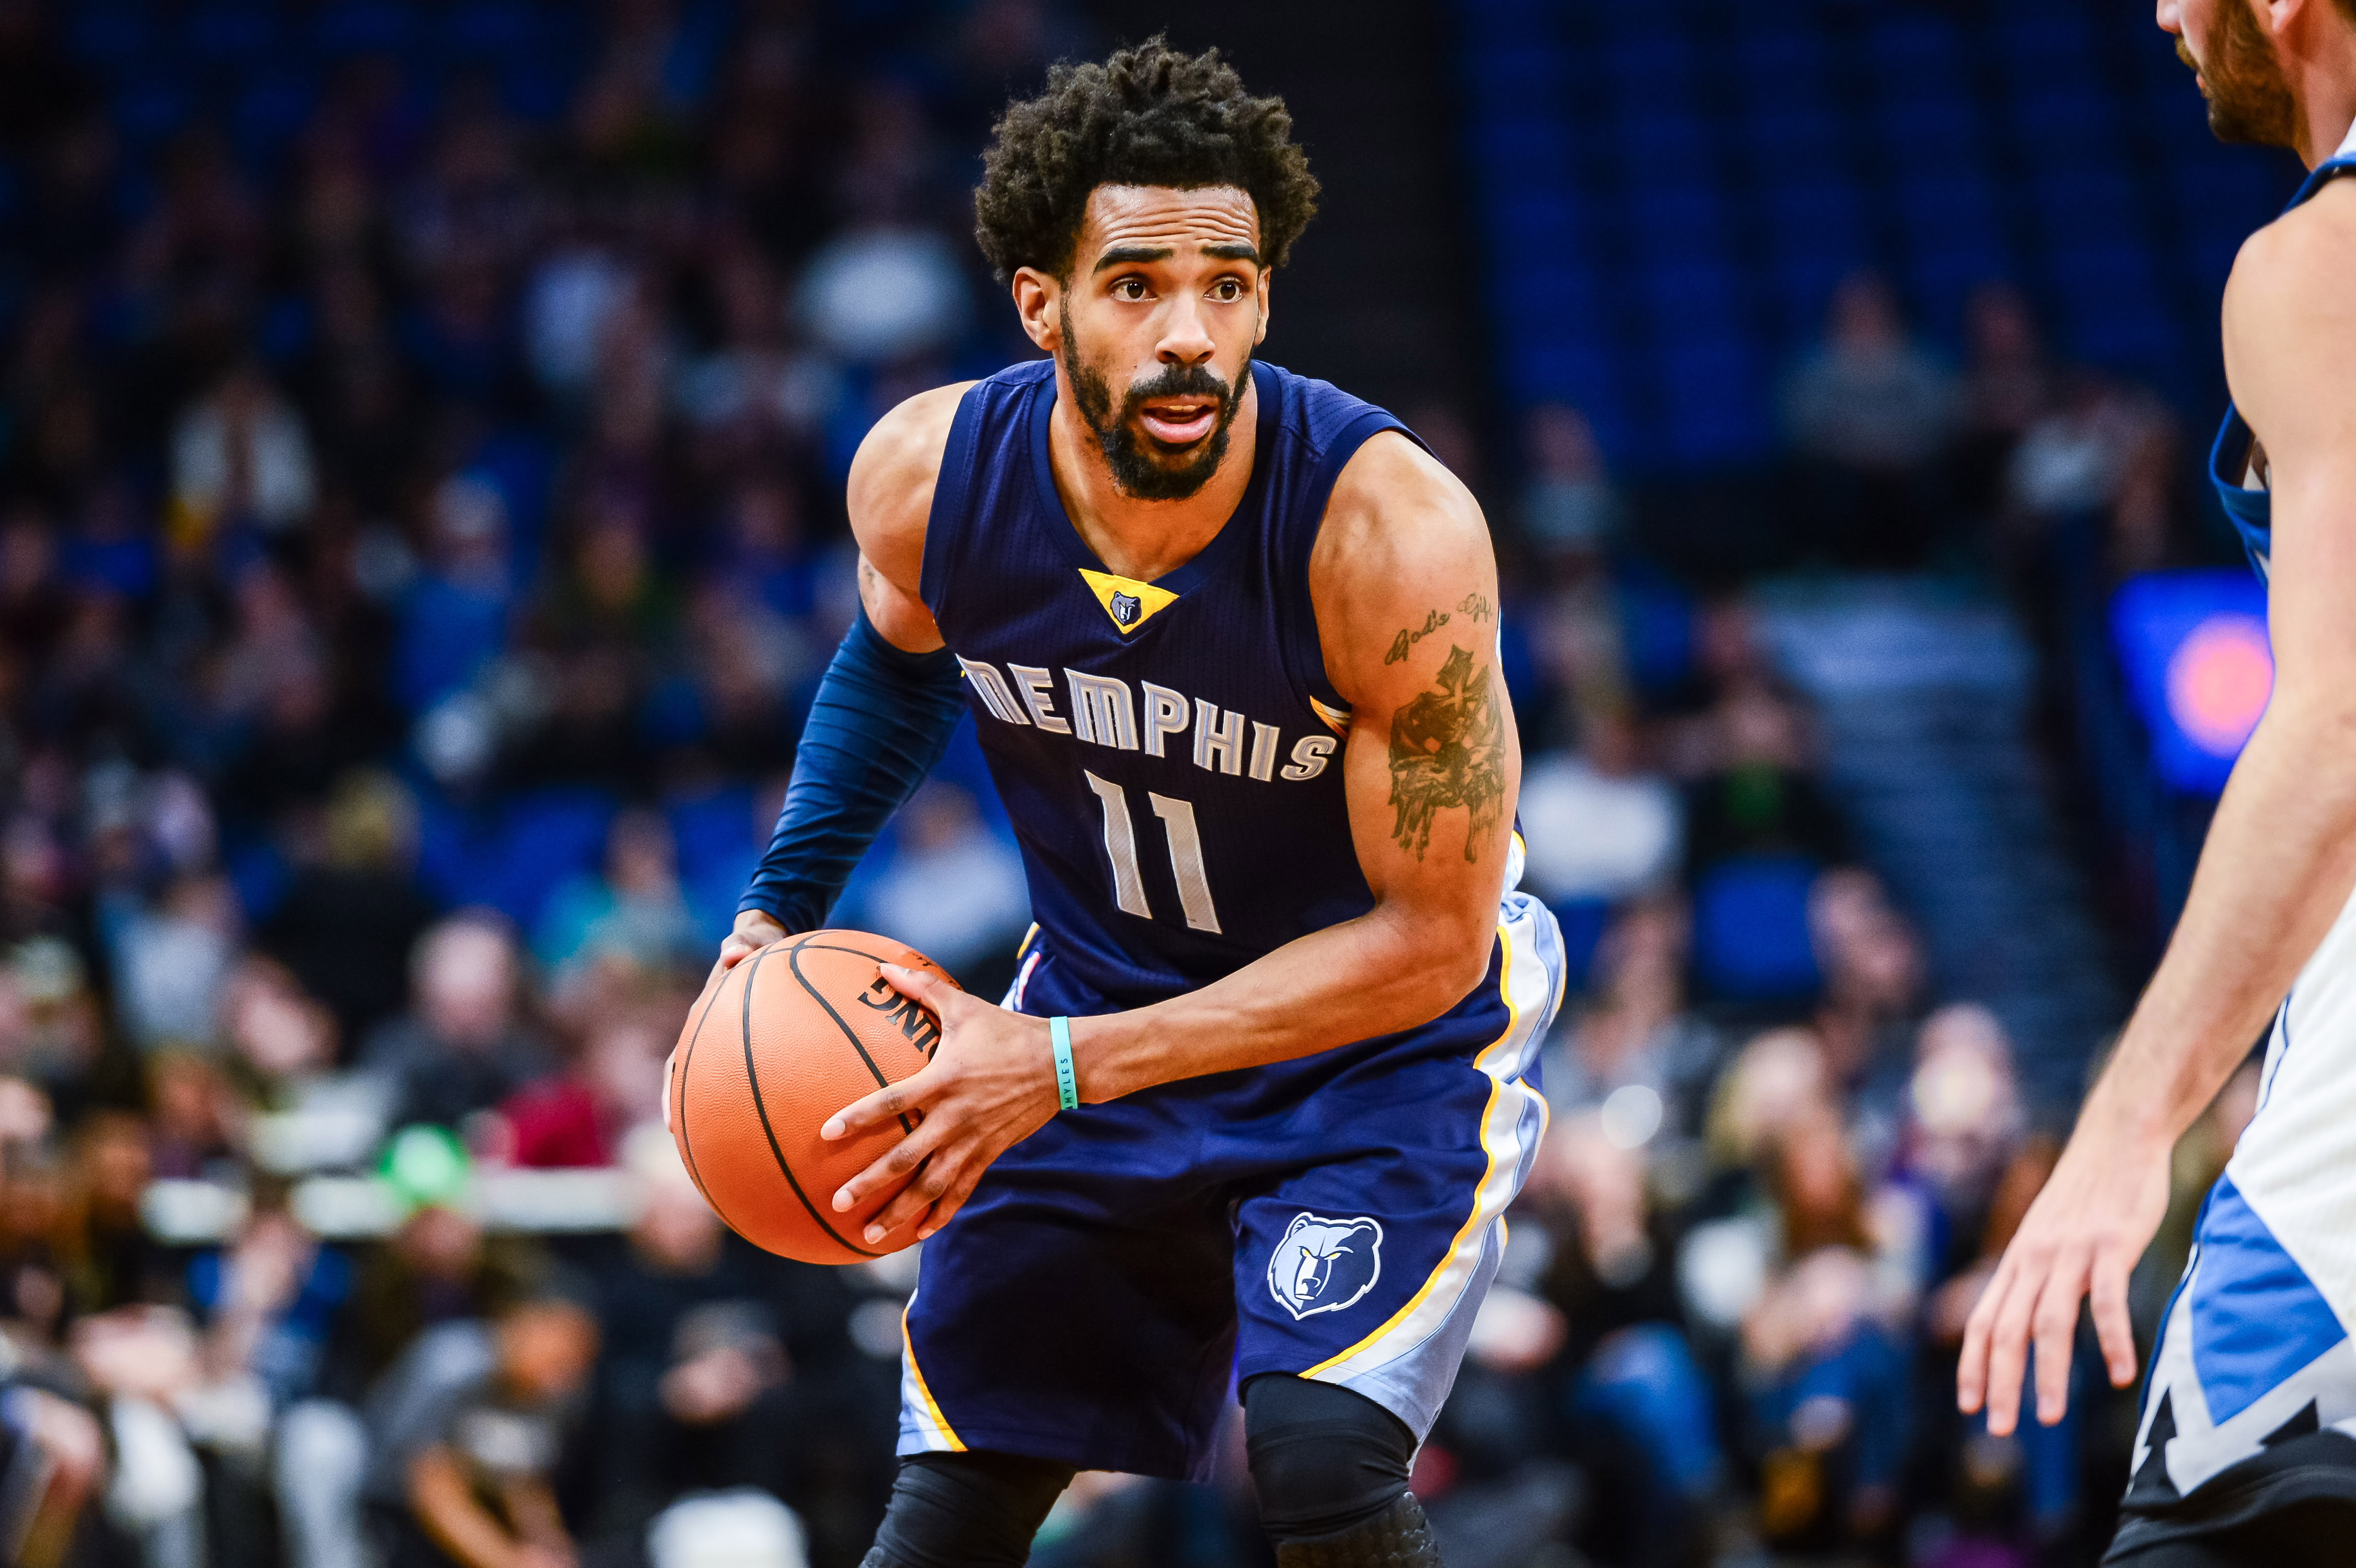 Memphis Grizzlies: Will Mike Conley Ever Be An All-Star?